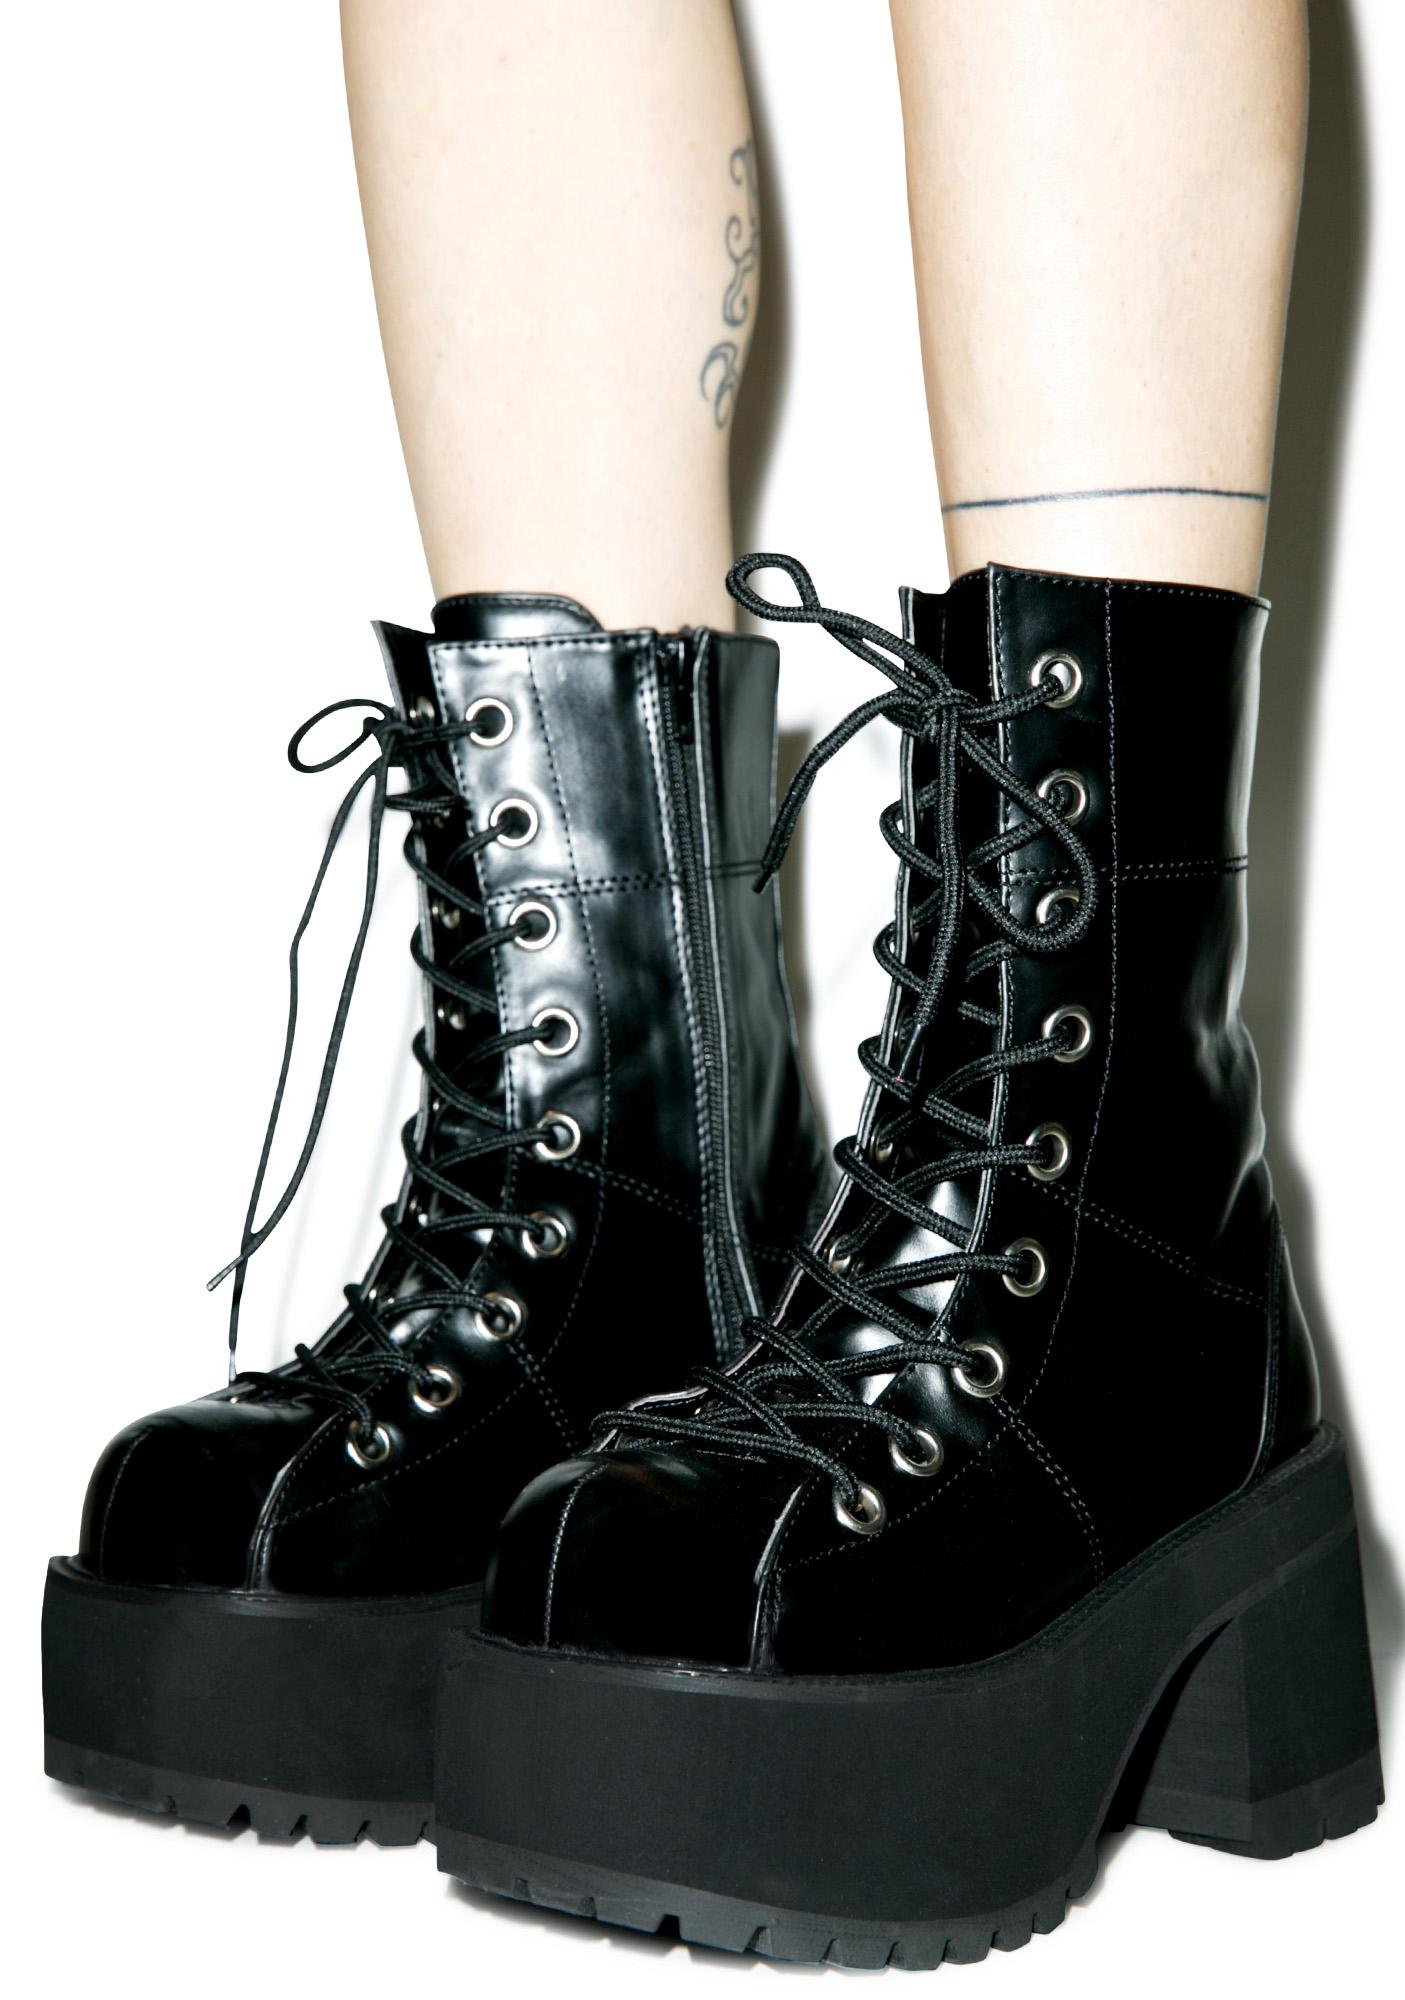 Demonia Shoes And Boots